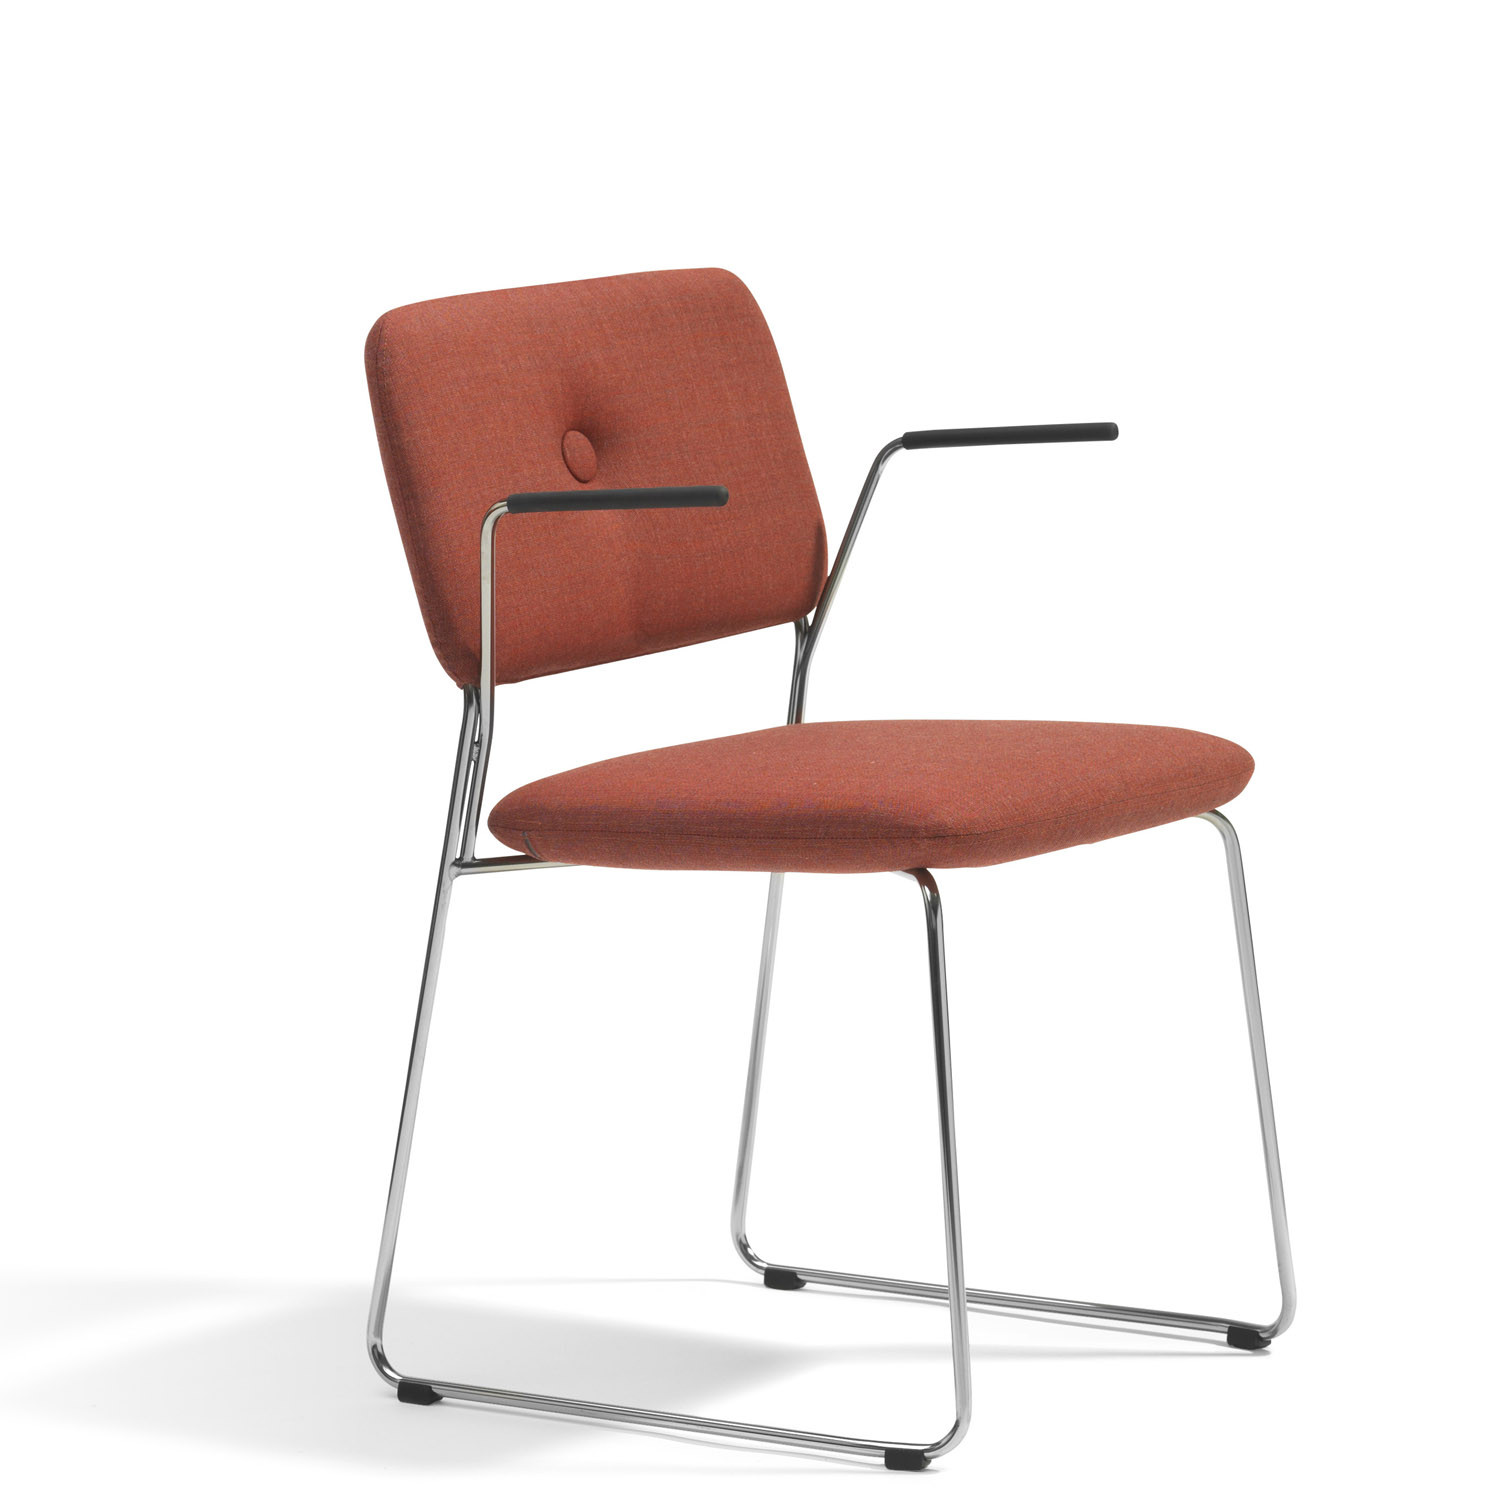 Dundra Armchair S70A by Stefan Borselius